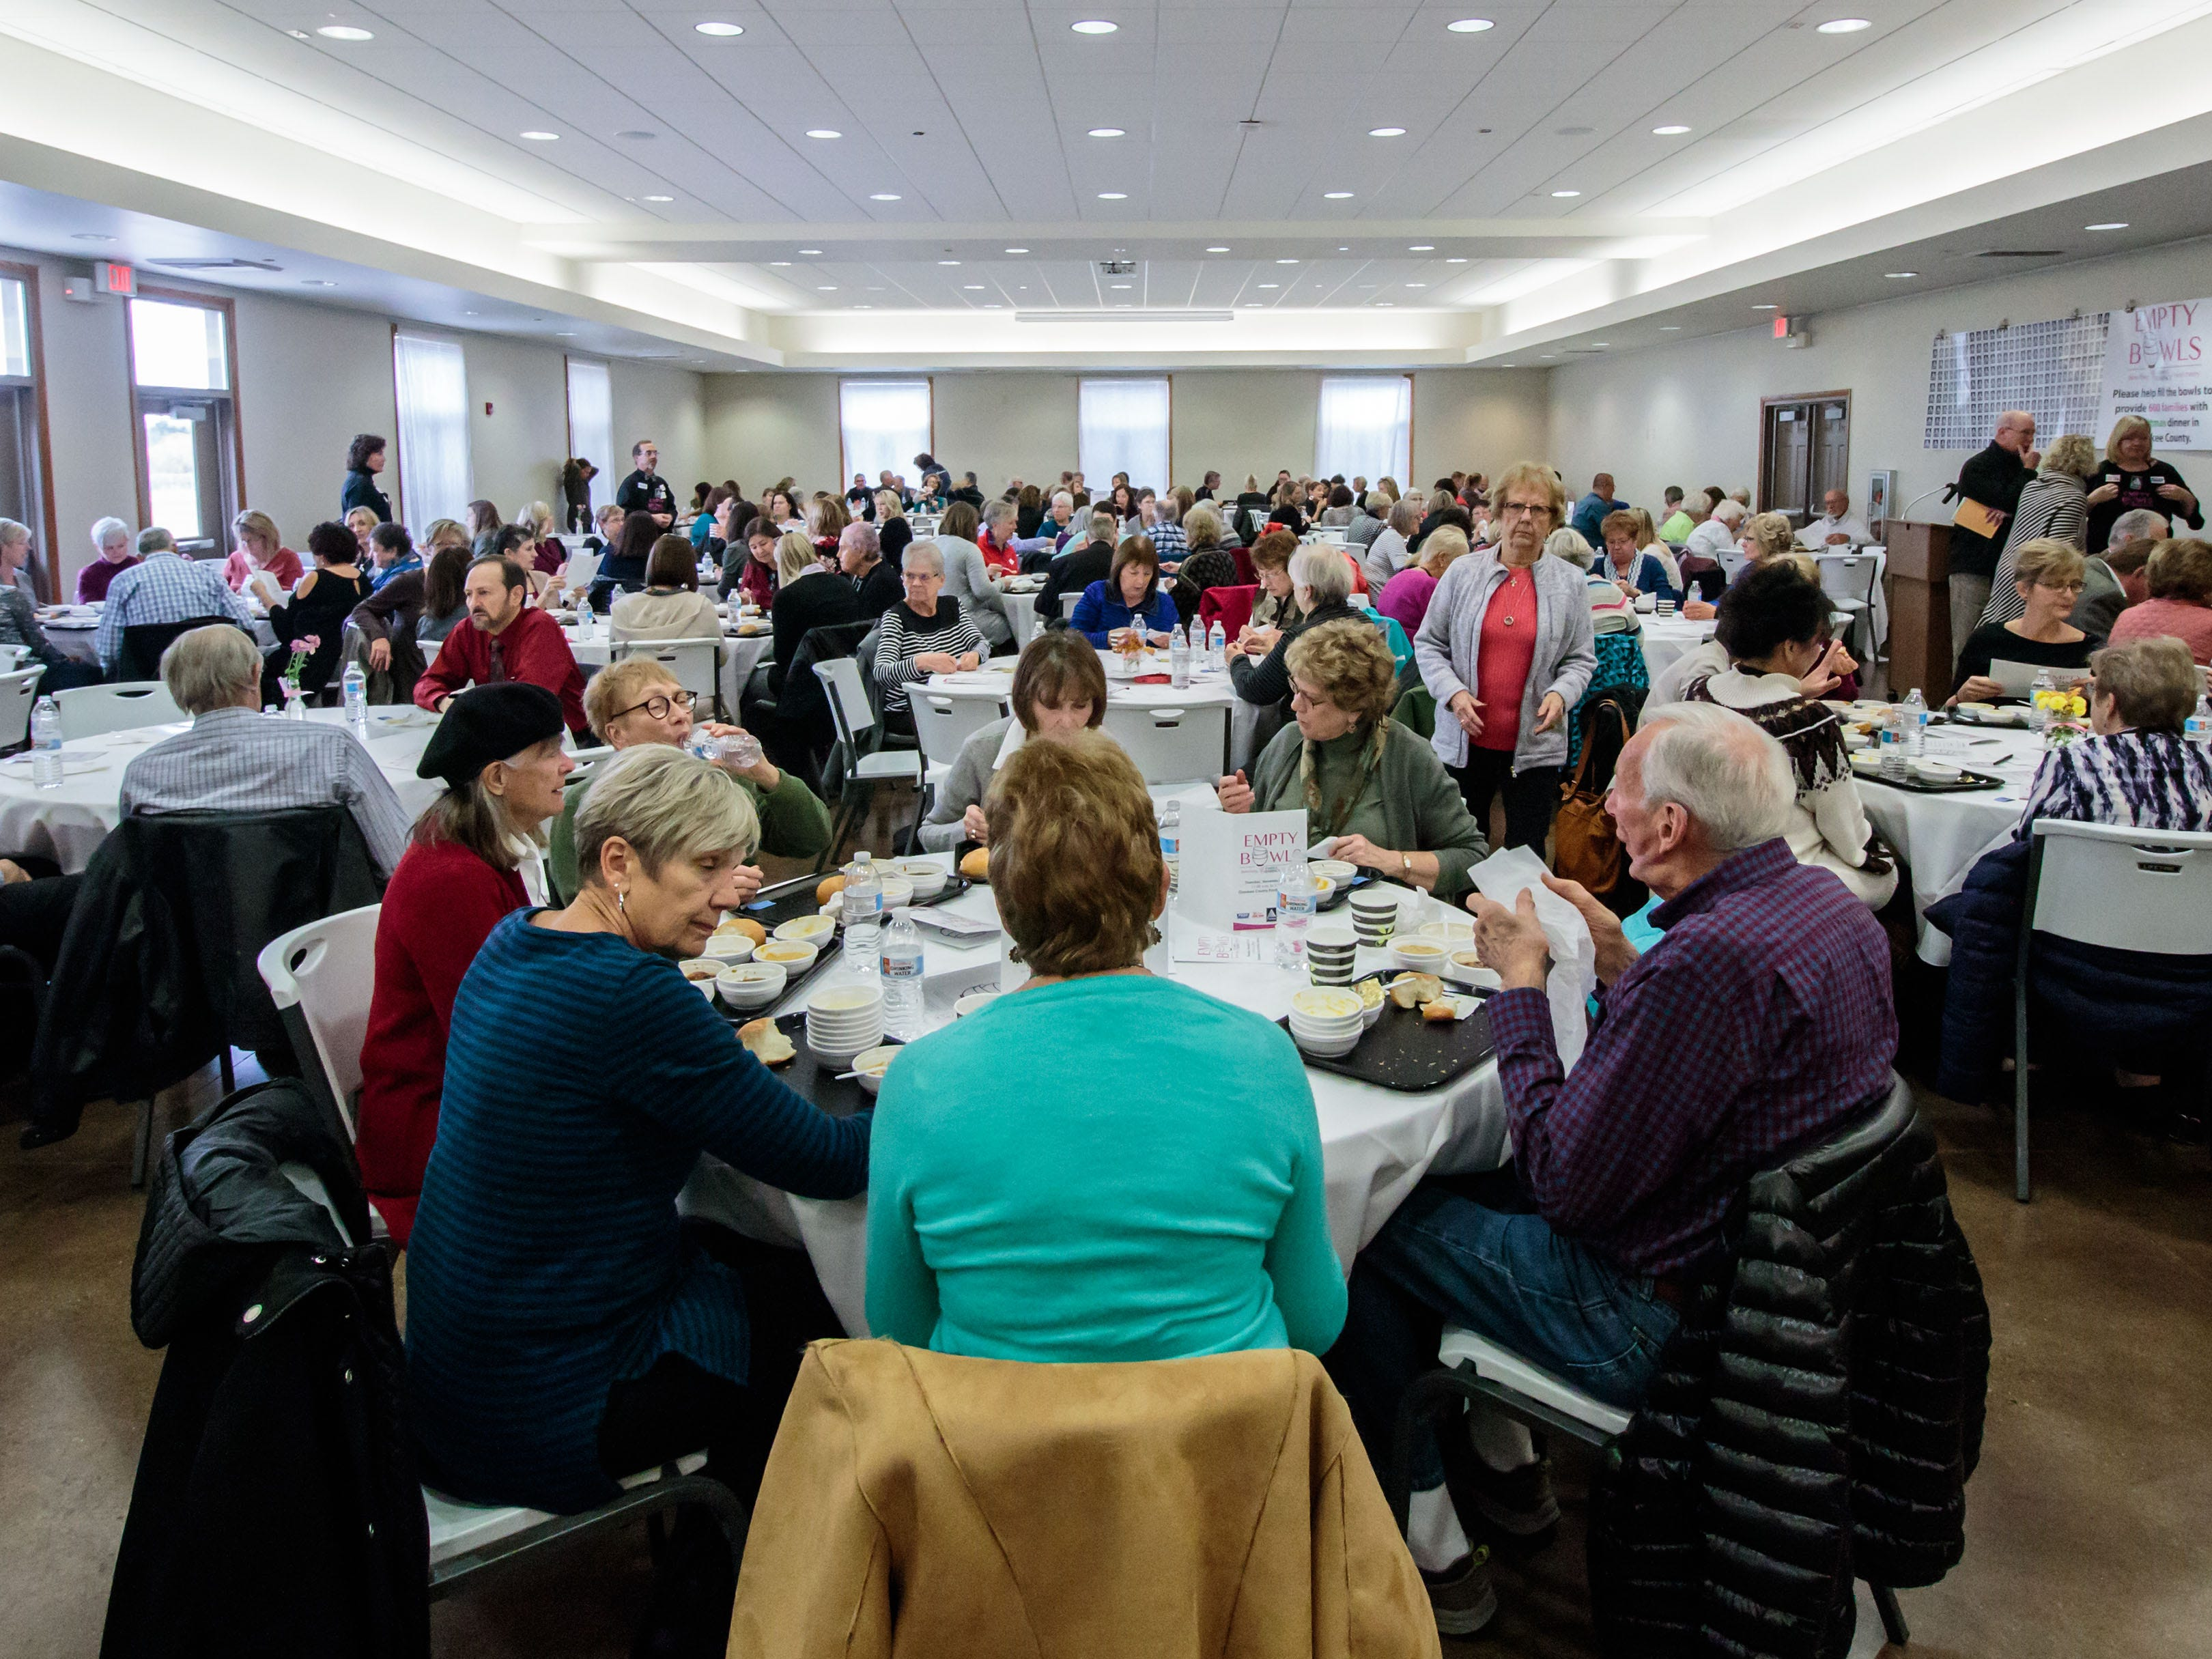 Attendees enjoy a delicious lunch during the Empty Bowls fundraising event at the Ozaukee Pavilion in Cedarburg on Thursday, Nov. 1, 2018. Proceeds from the event will benefit Family Sharing's food pantry and provide 600 Ozaukee County families with Thanksgiving dinners.